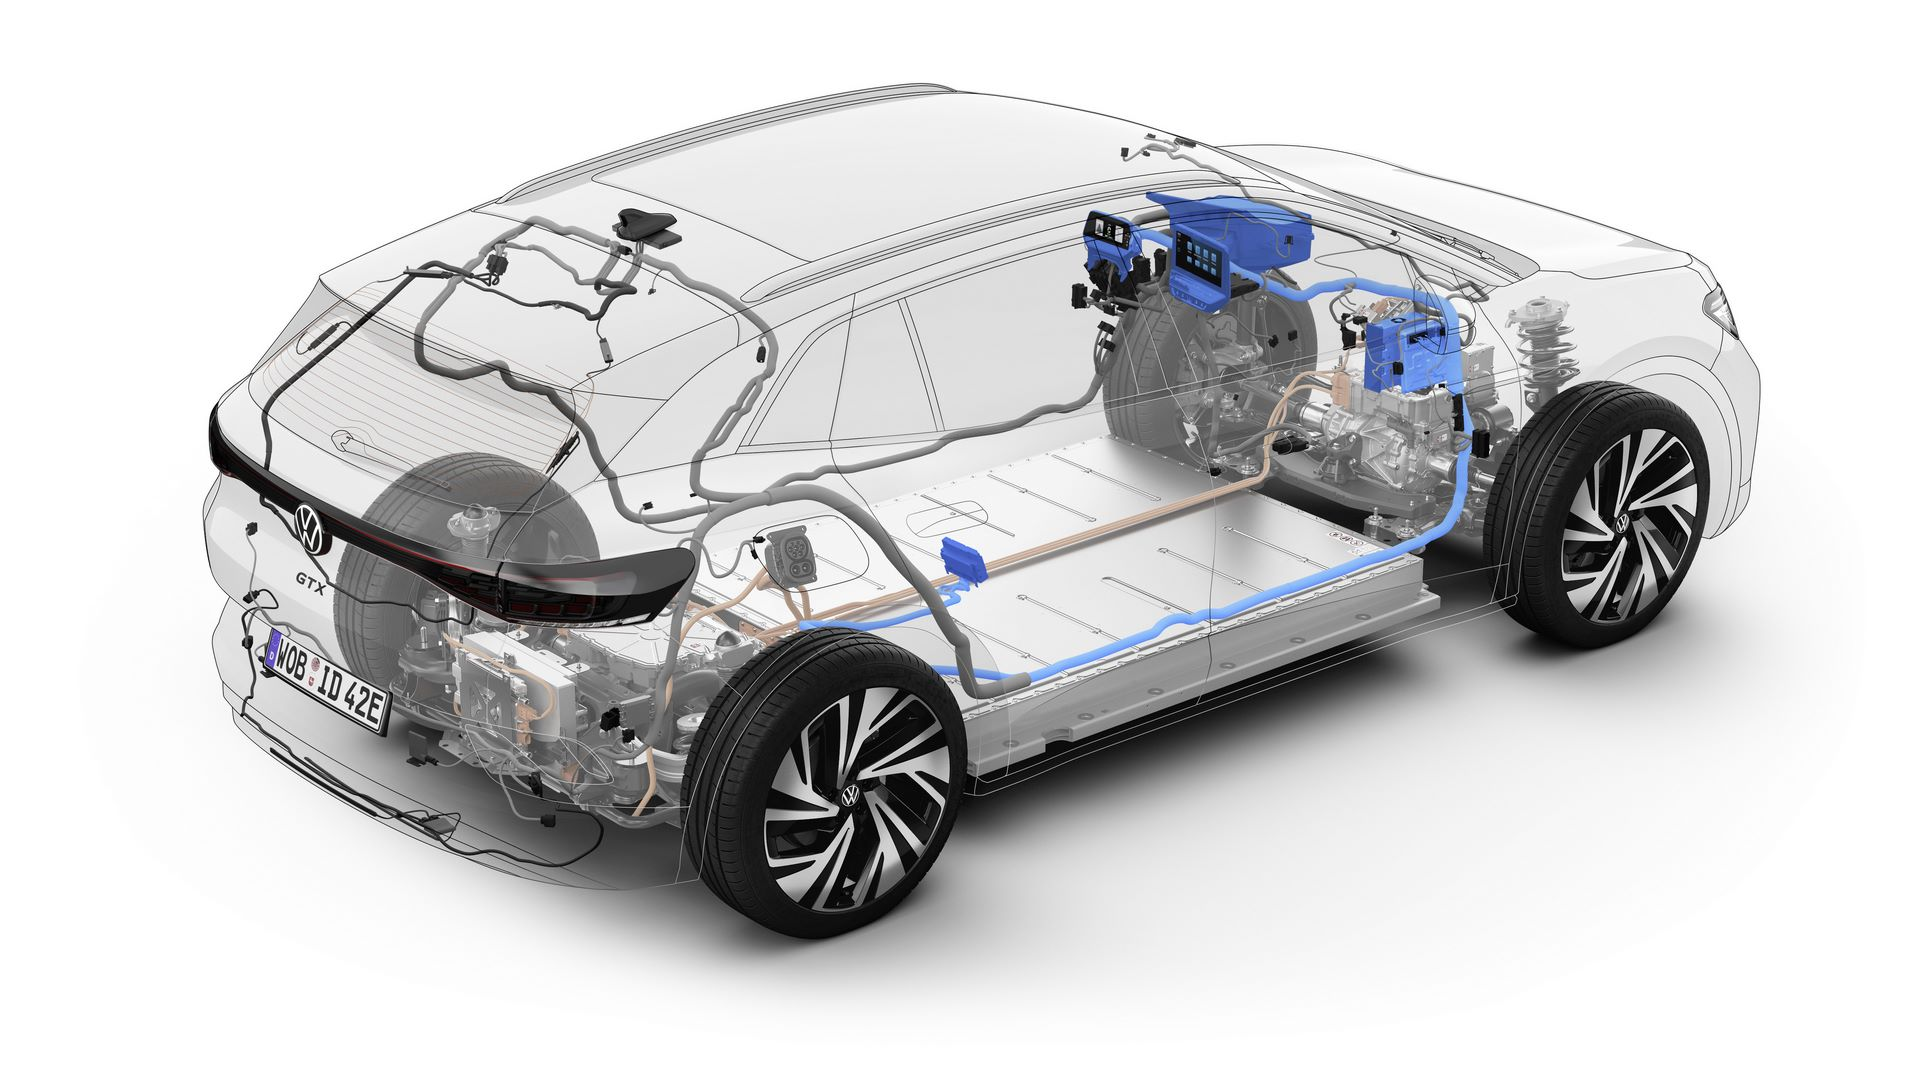 Volkswagen launches Over-the-Air Updates for the ID. family